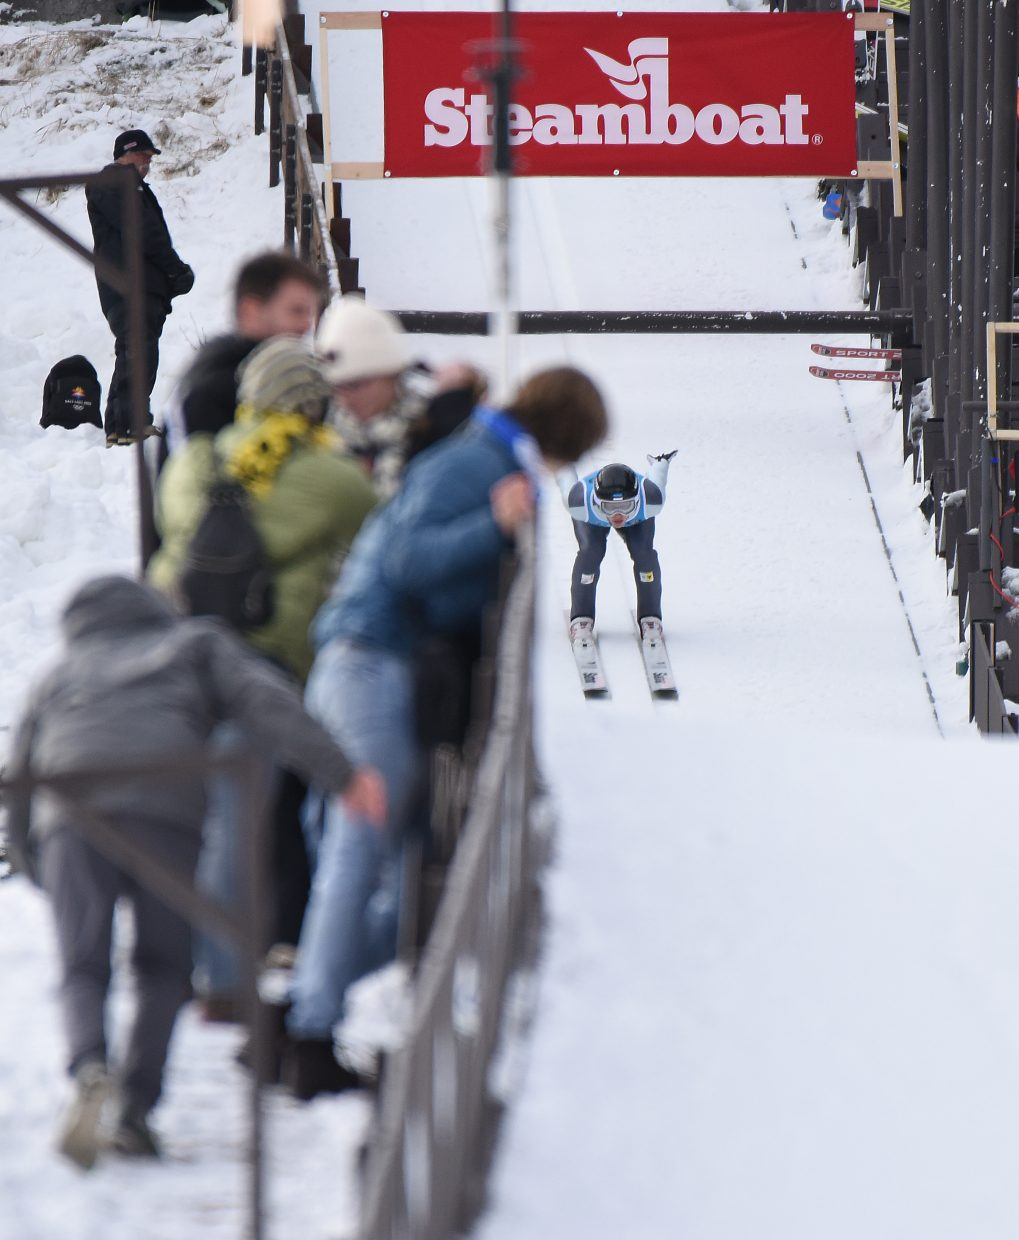 Estonian skier Han Hendrik Piho slides down the HS75 ski jump at Howelsen Hill on Saturday during a Continental Cup competition in Steamboat Springs.